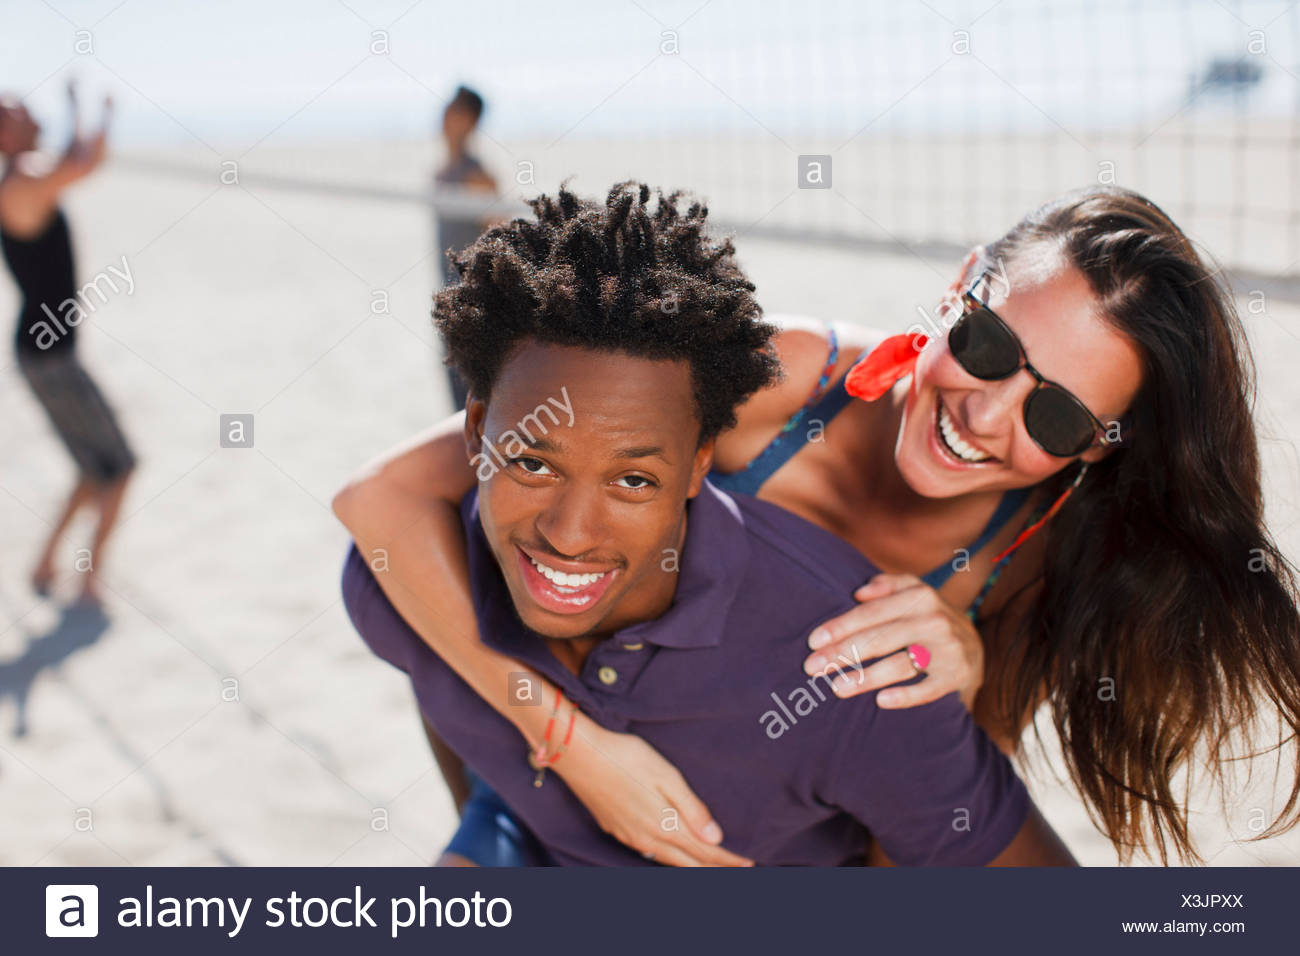 Couple playing together on beach - Stock Image